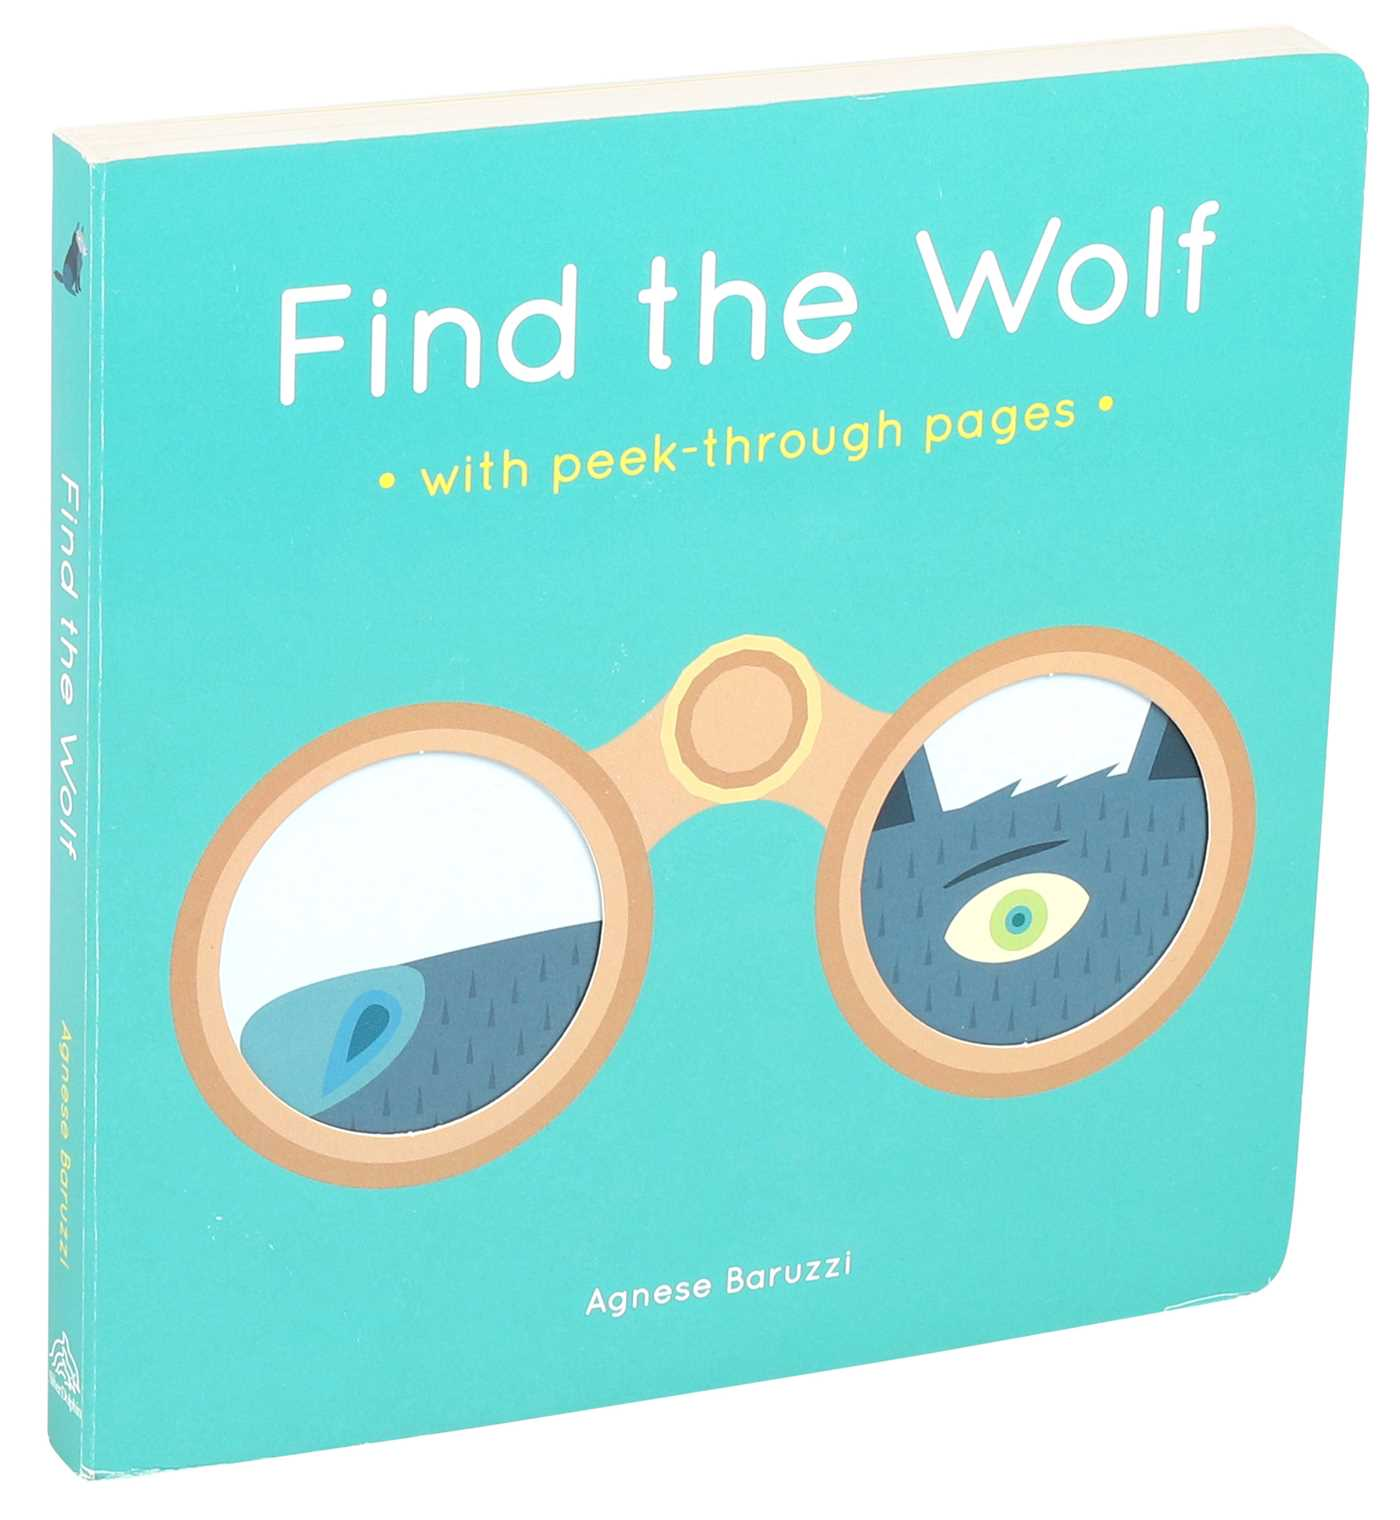 Find Board find the wolf | bookcarly blake, agnese baruzzi